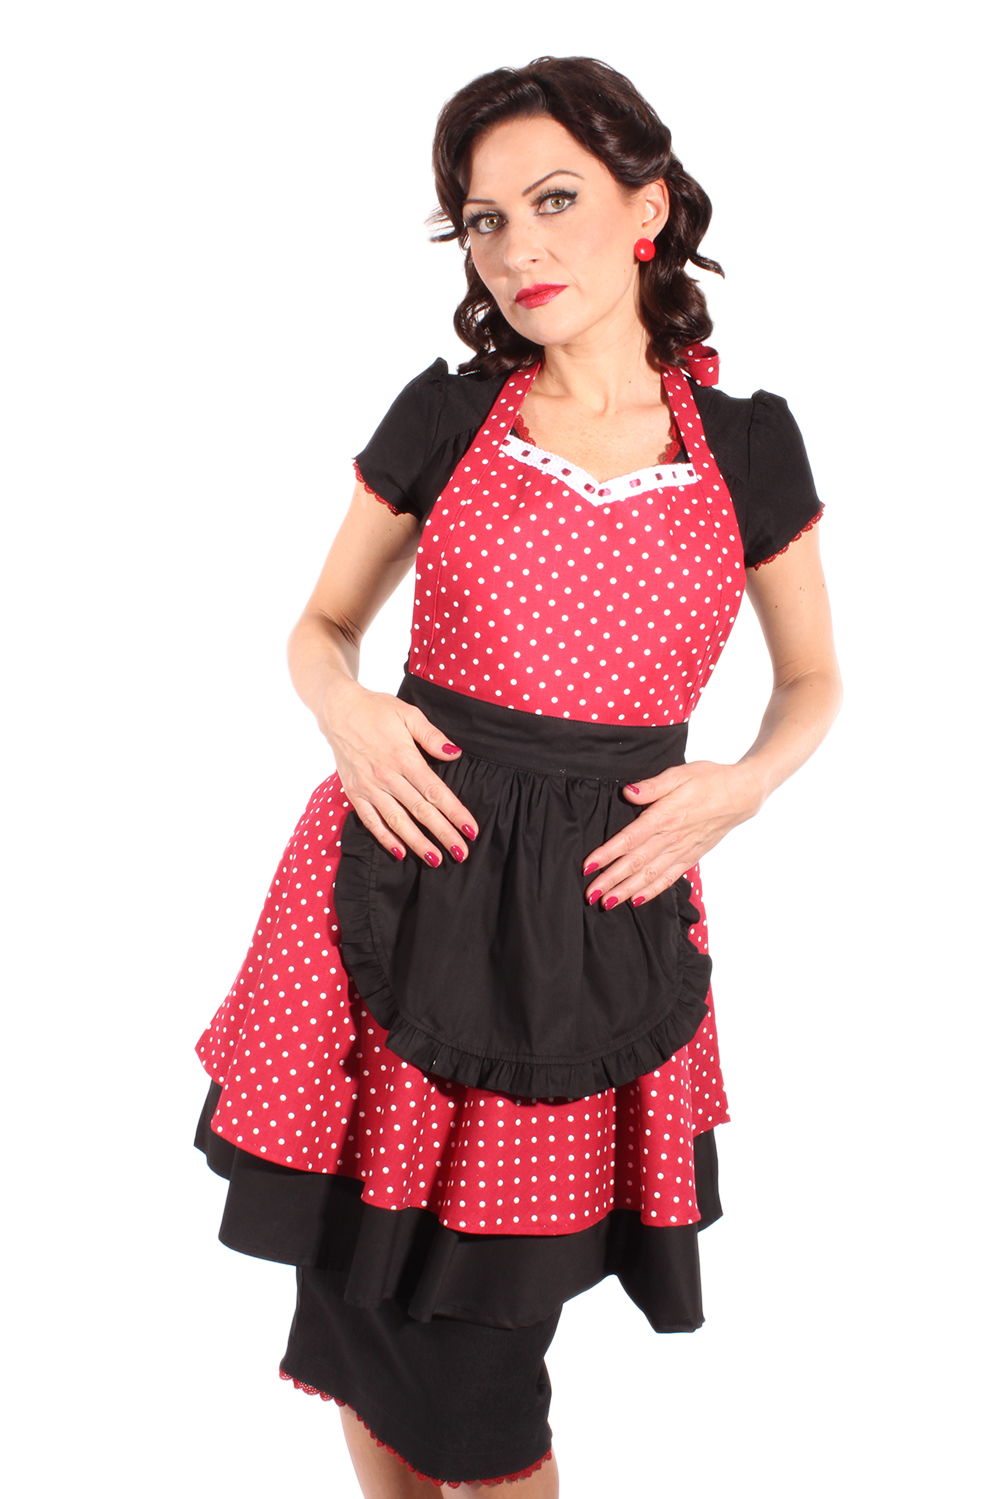 50s retro polka dots rockabilly diner pin up sch rze latzsch rze ebay. Black Bedroom Furniture Sets. Home Design Ideas